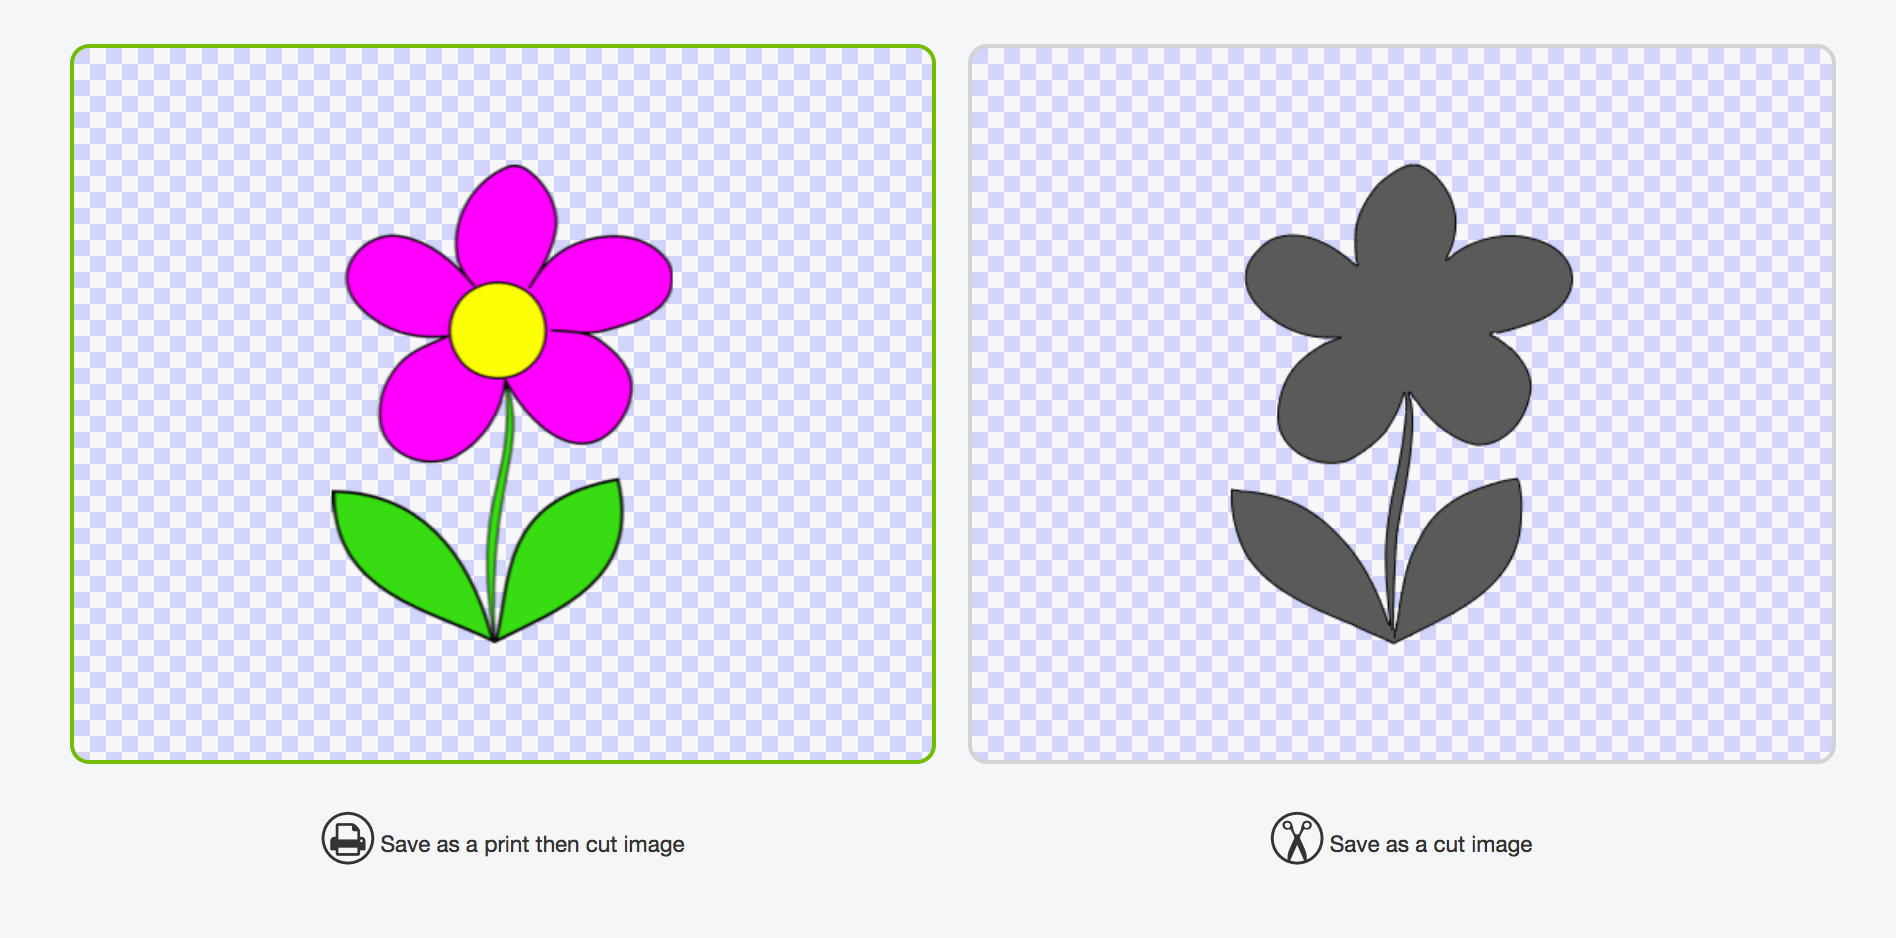 Showing flower image in Cricut Design Space